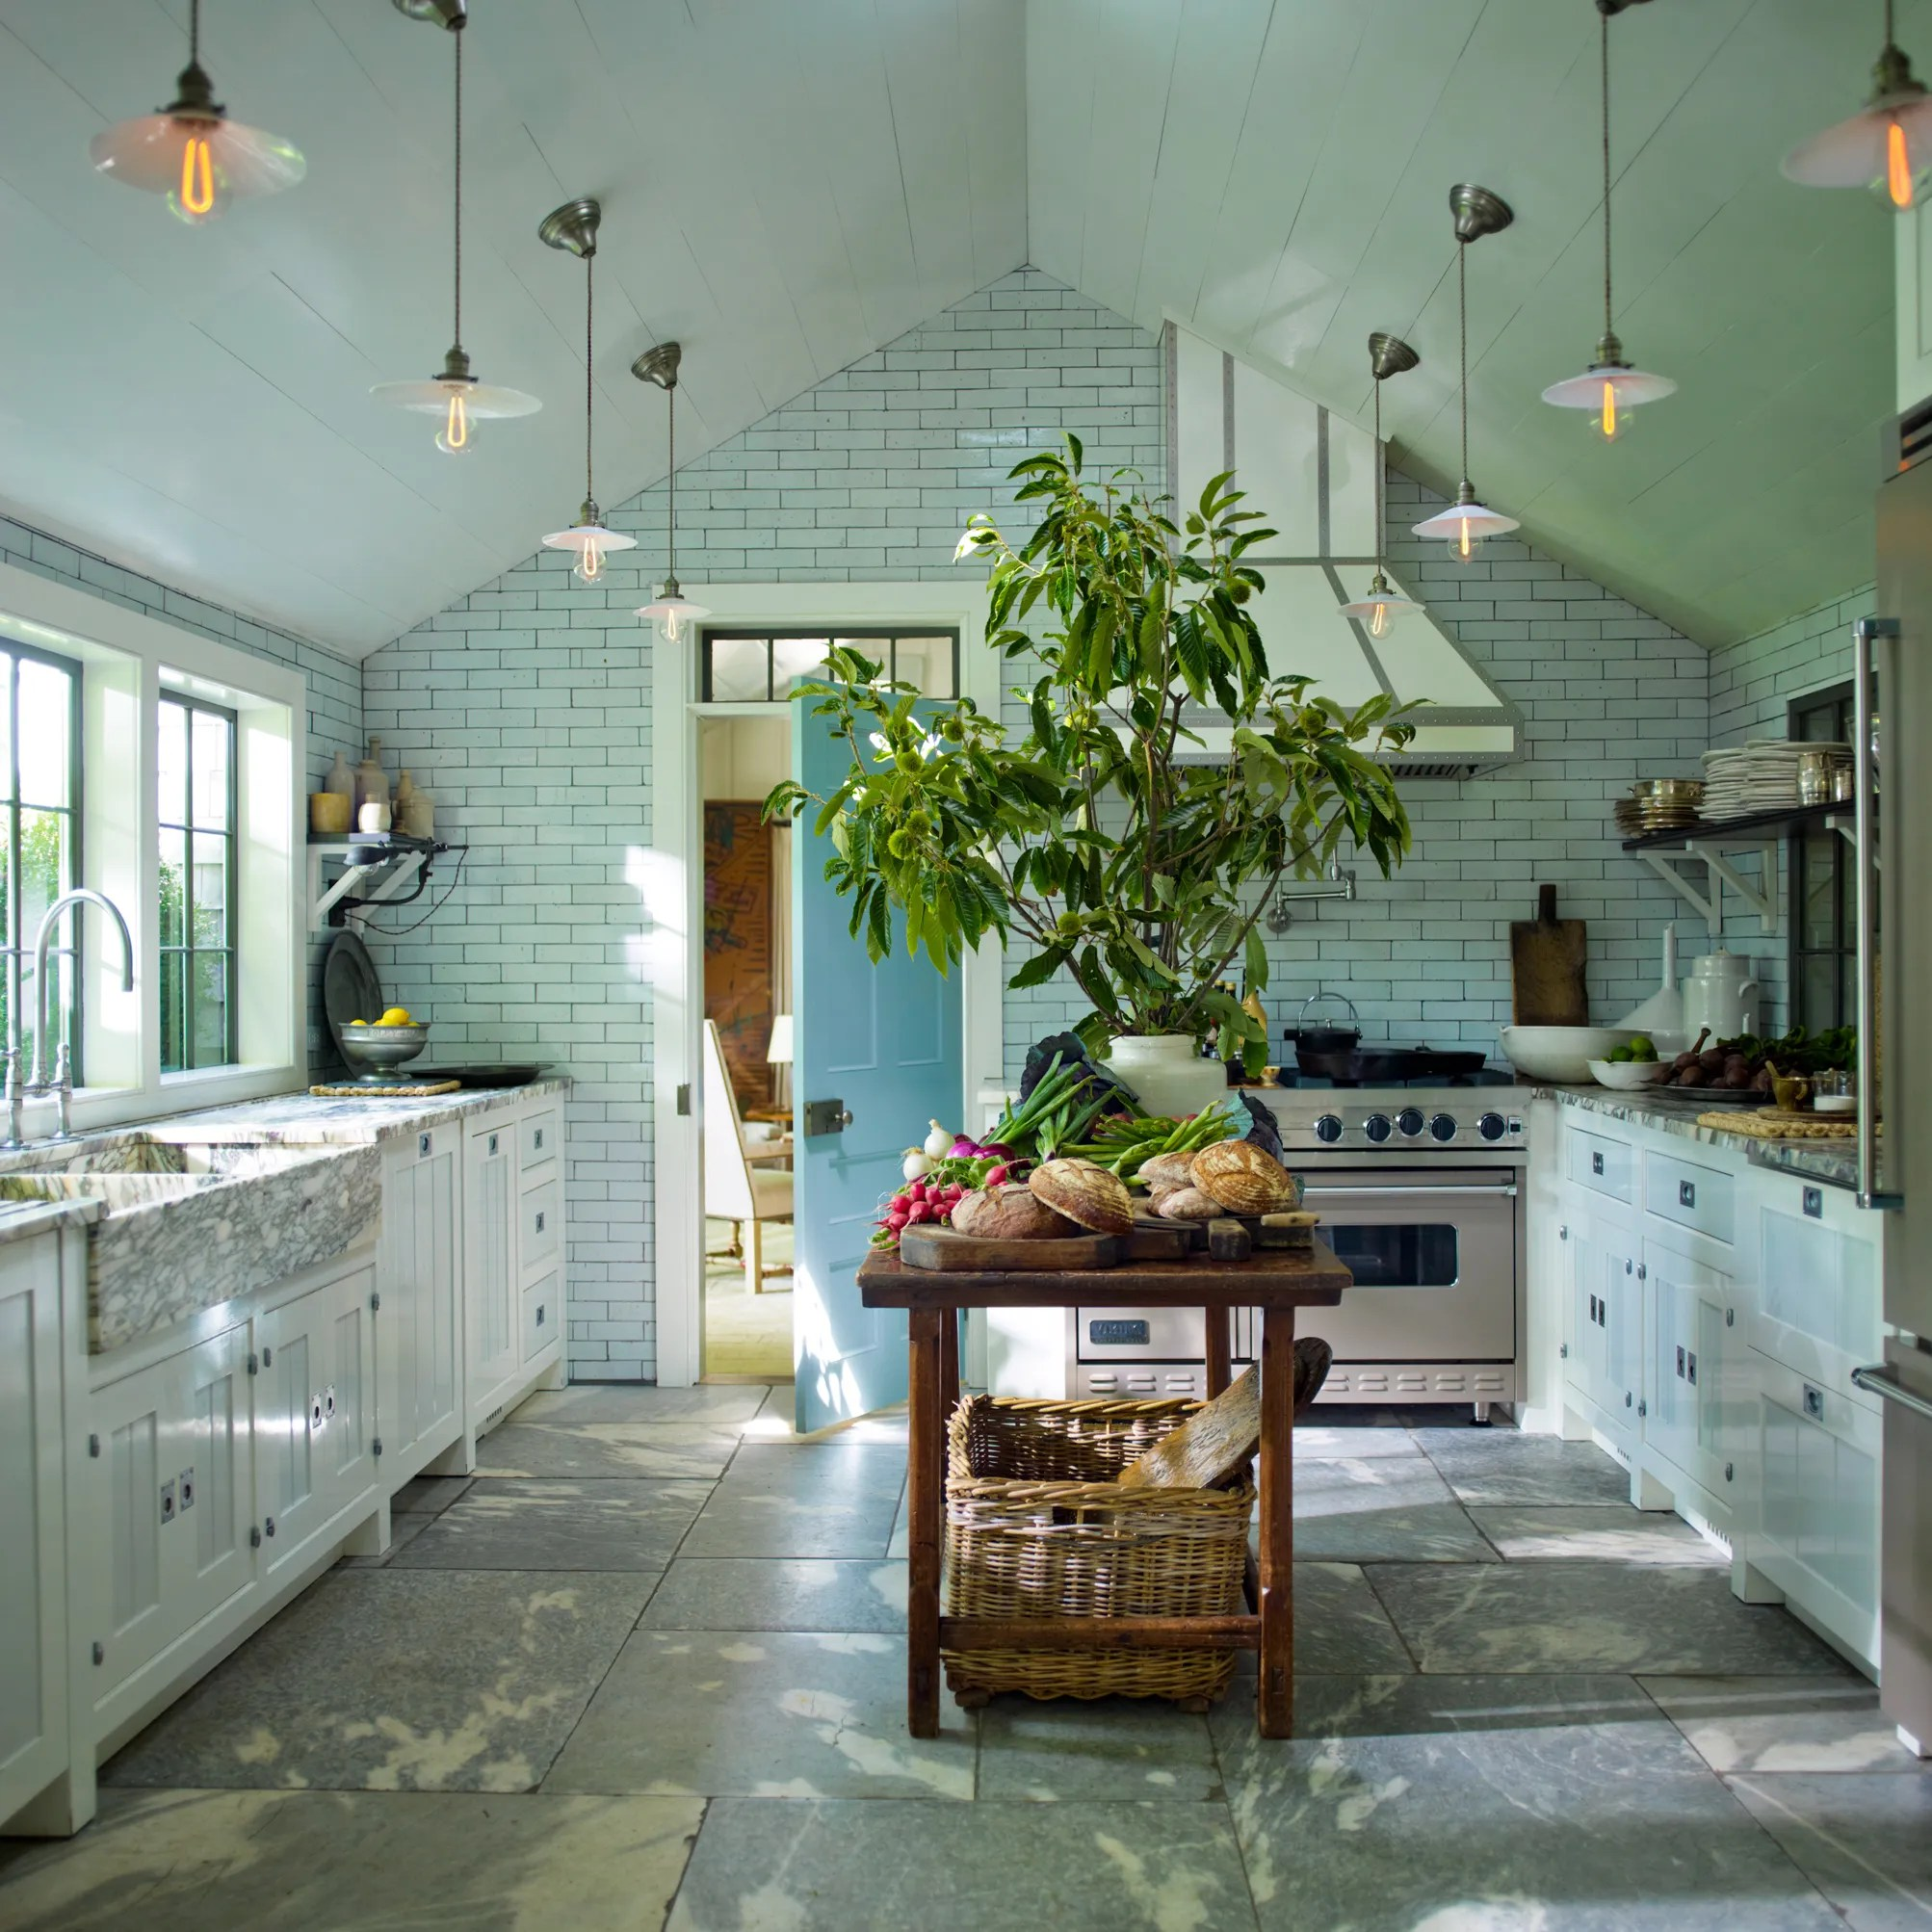 designer steven gambrel's 8 favorite kitchen designs - architectural